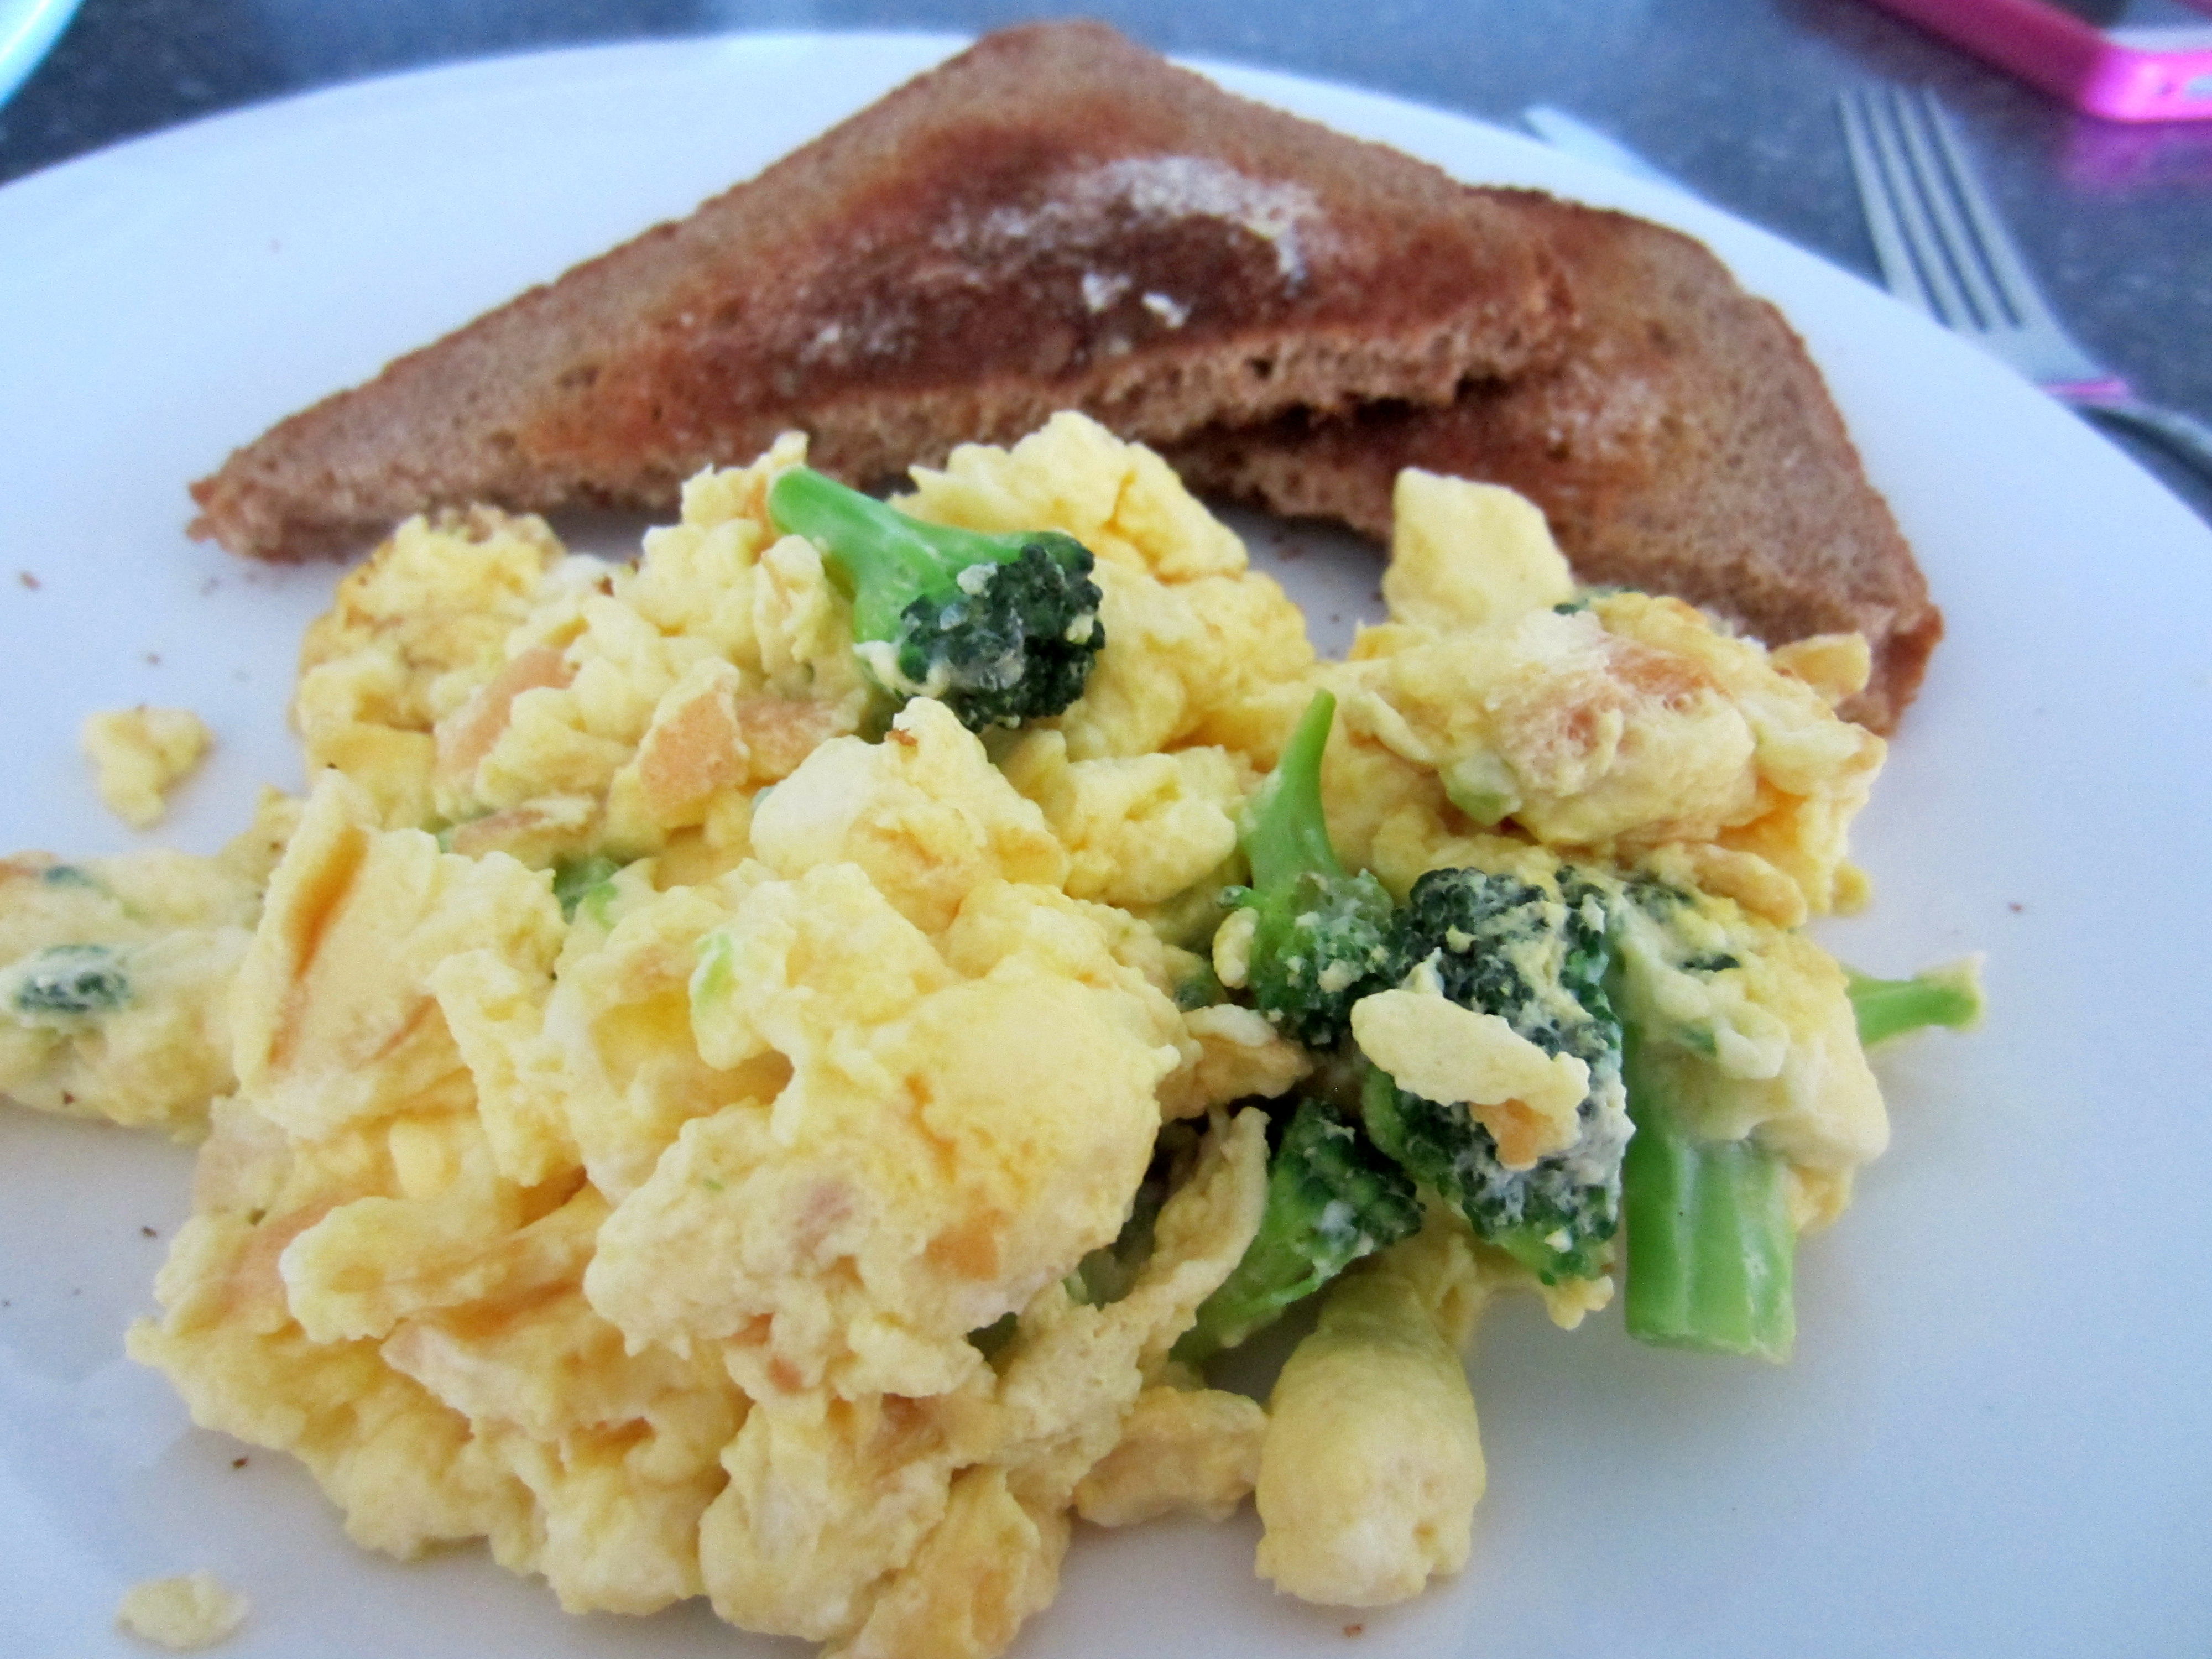 Scrabled eggs with broccoli